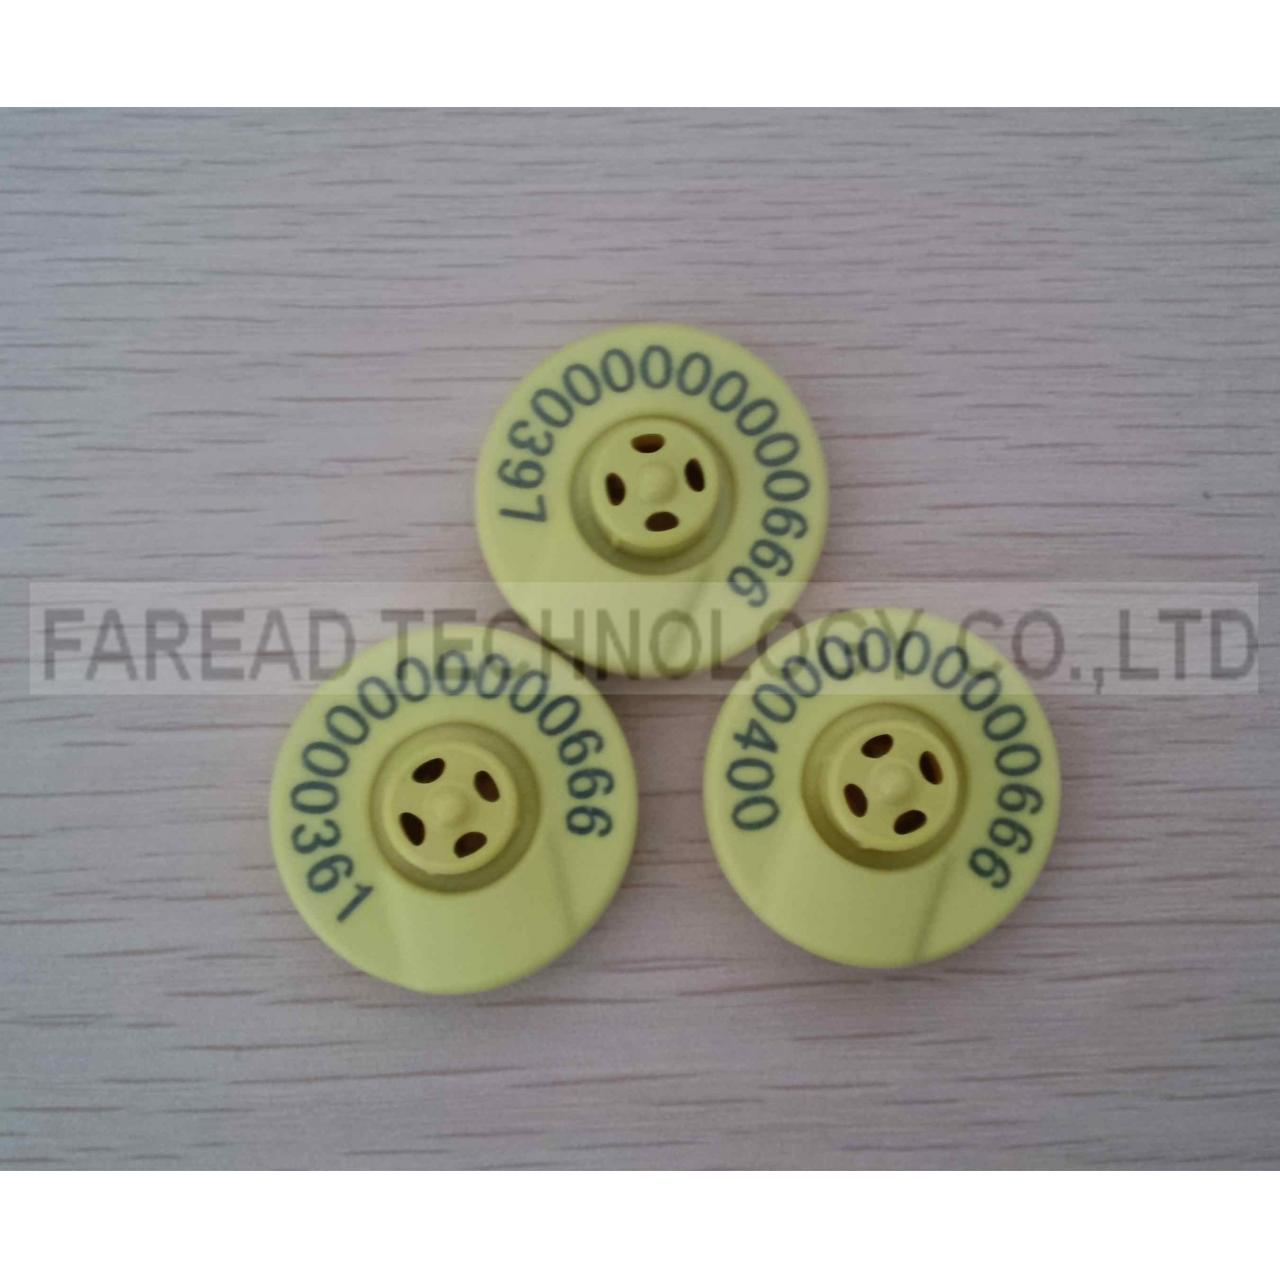 Buy cheap FRD012 Ear Tag-HDX from wholesalers